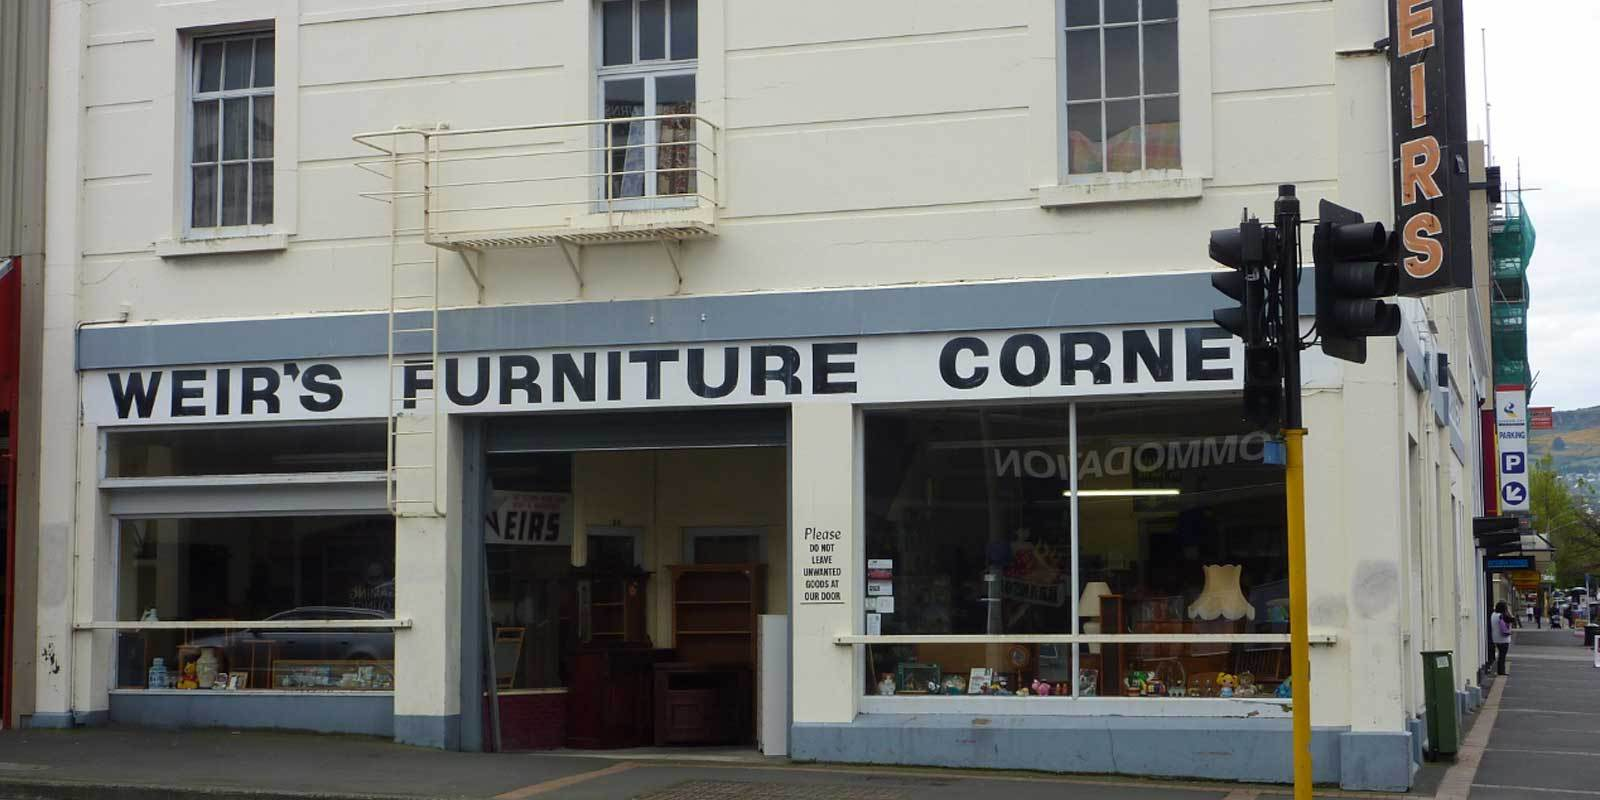 Shop Front - Weir's Furniture Corner